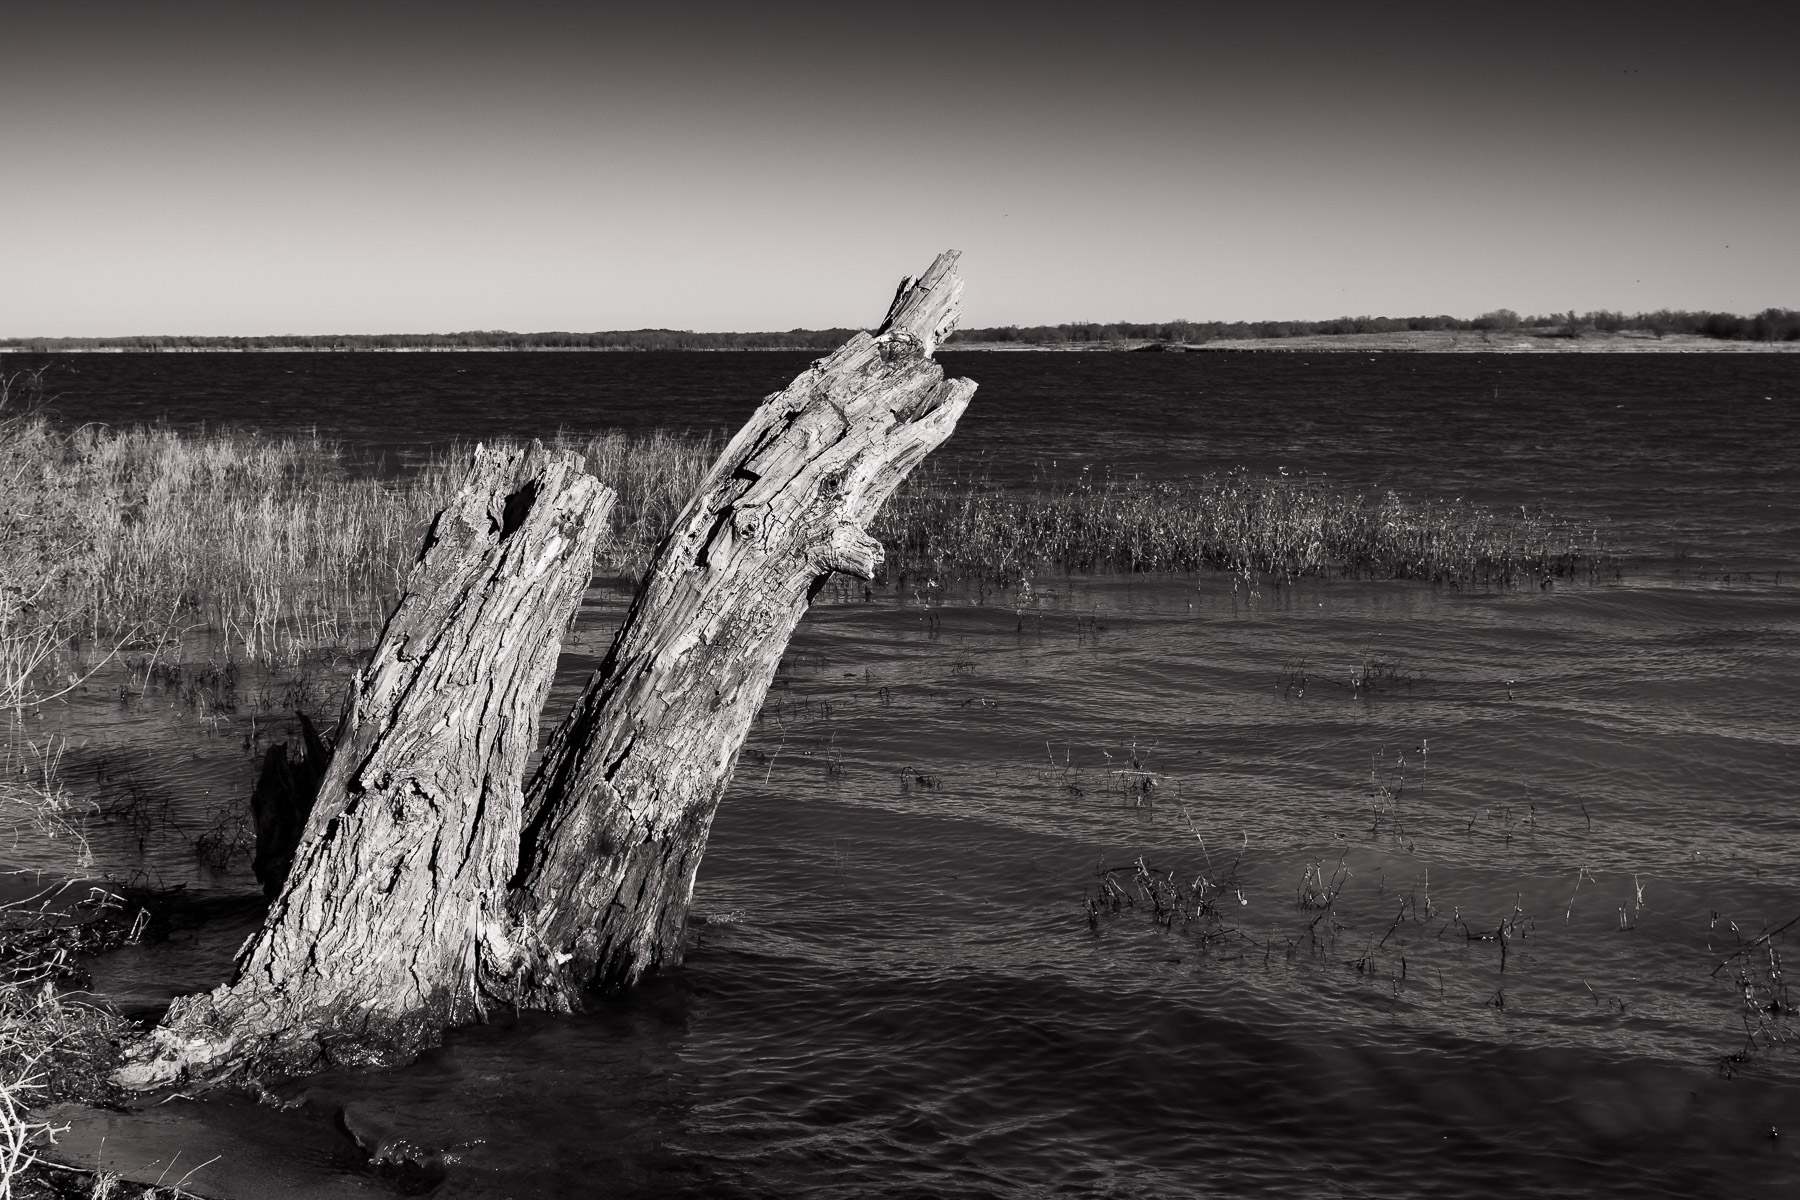 A tree stump emerges from the waters of the Big Mineral Arm of Lake Texoma at the Hagerman National Wildlife Refuge, Texas.